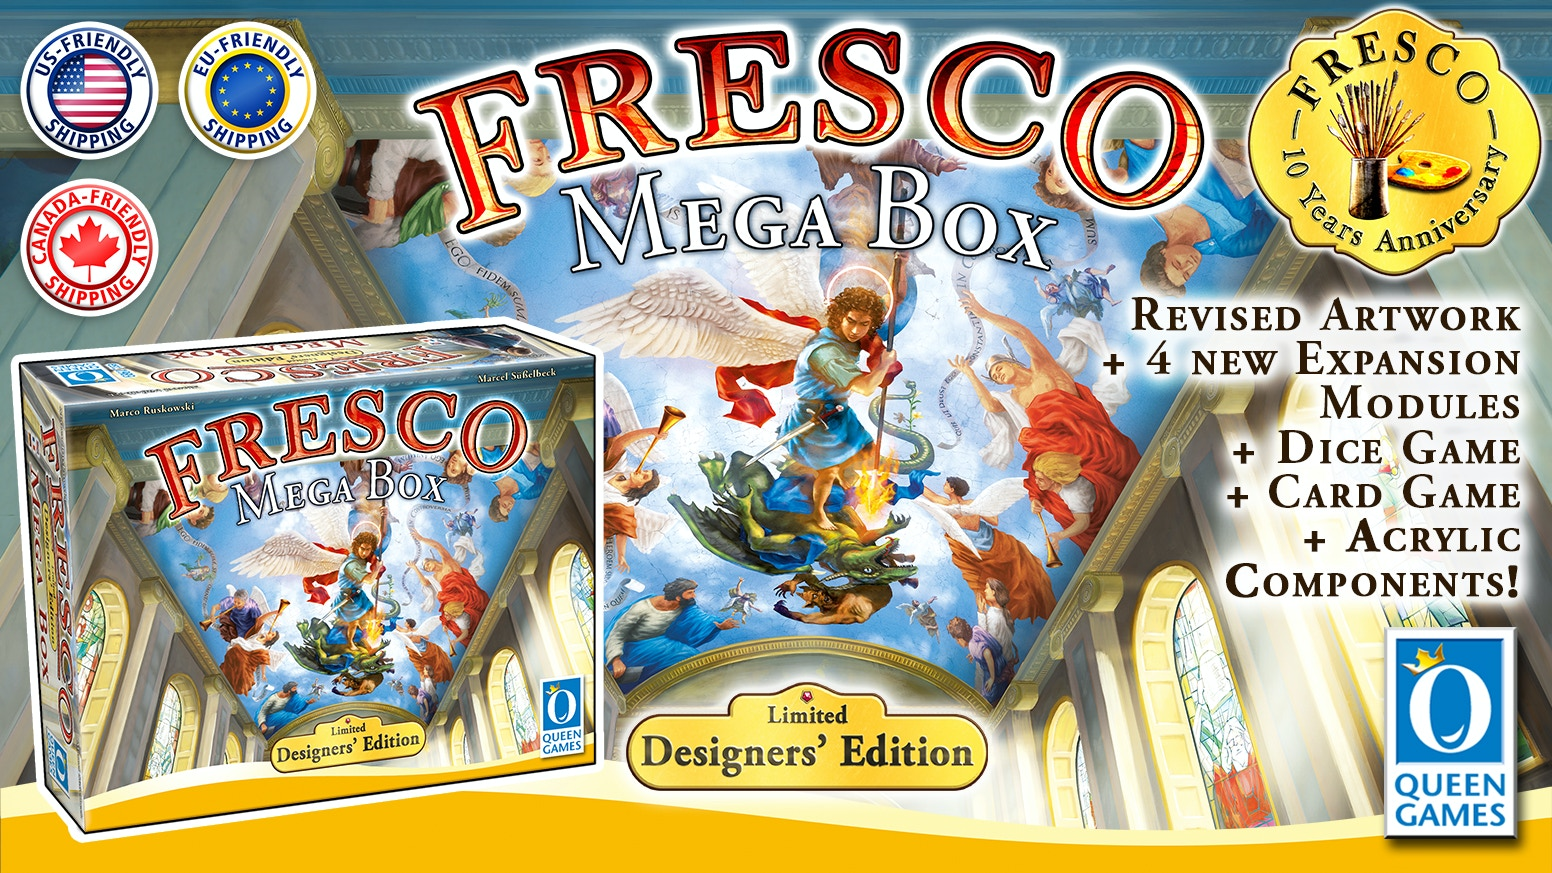 ALL of FRESCO including 4 brand new modules, Fresco - The Card Game and Fresco - The Dice Game!